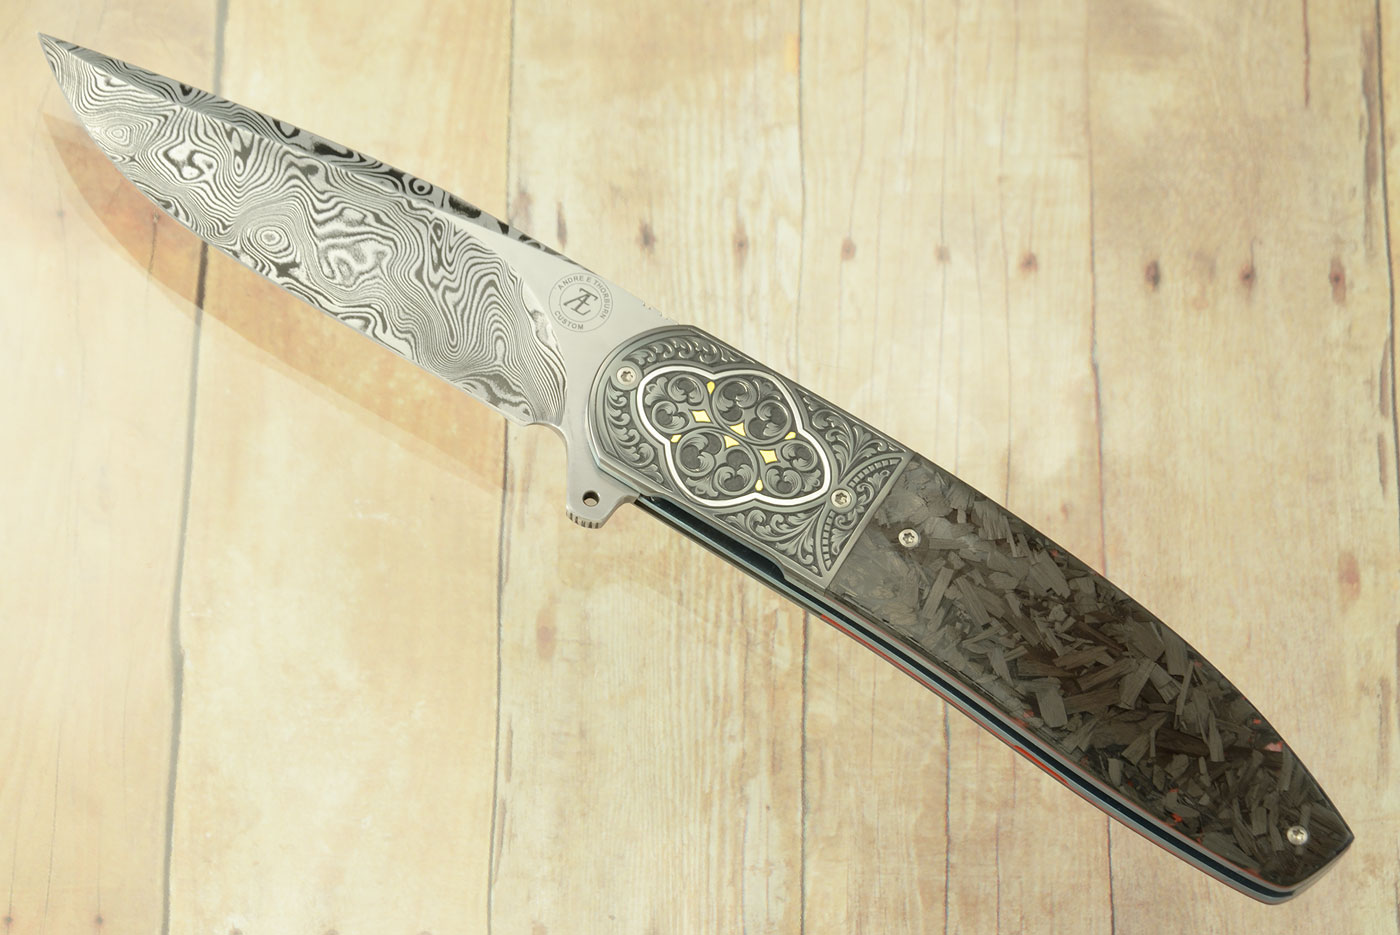 L28 Flipper with Shred Carbon Fiber, Damascus, and Engraved Zirconium with Gold and Silver Inlays (Ceramic IKBS)